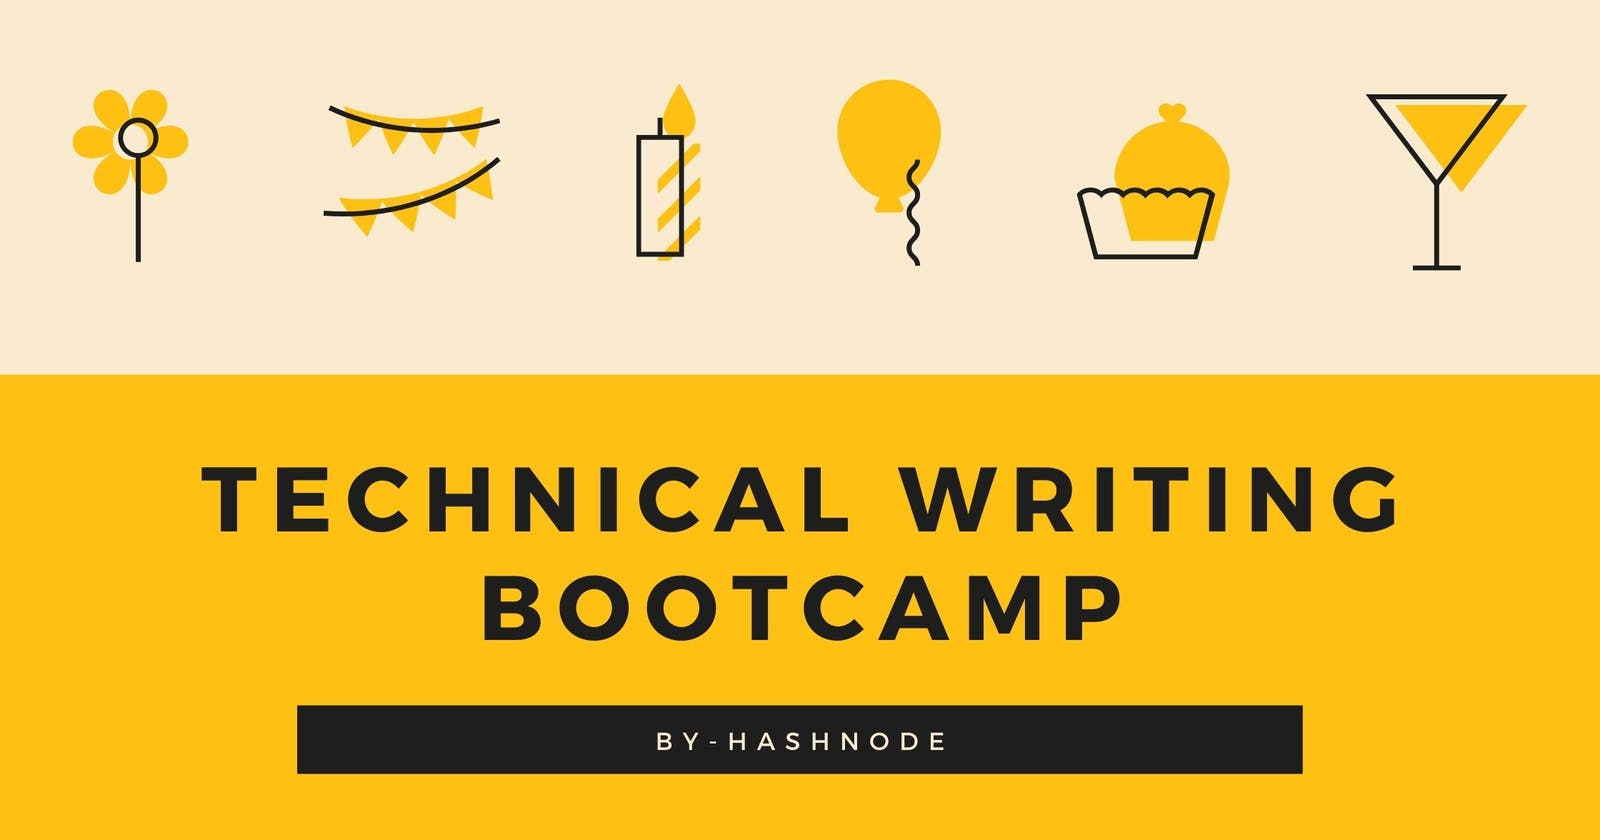 How I failed at Technical Writing Bootcamp